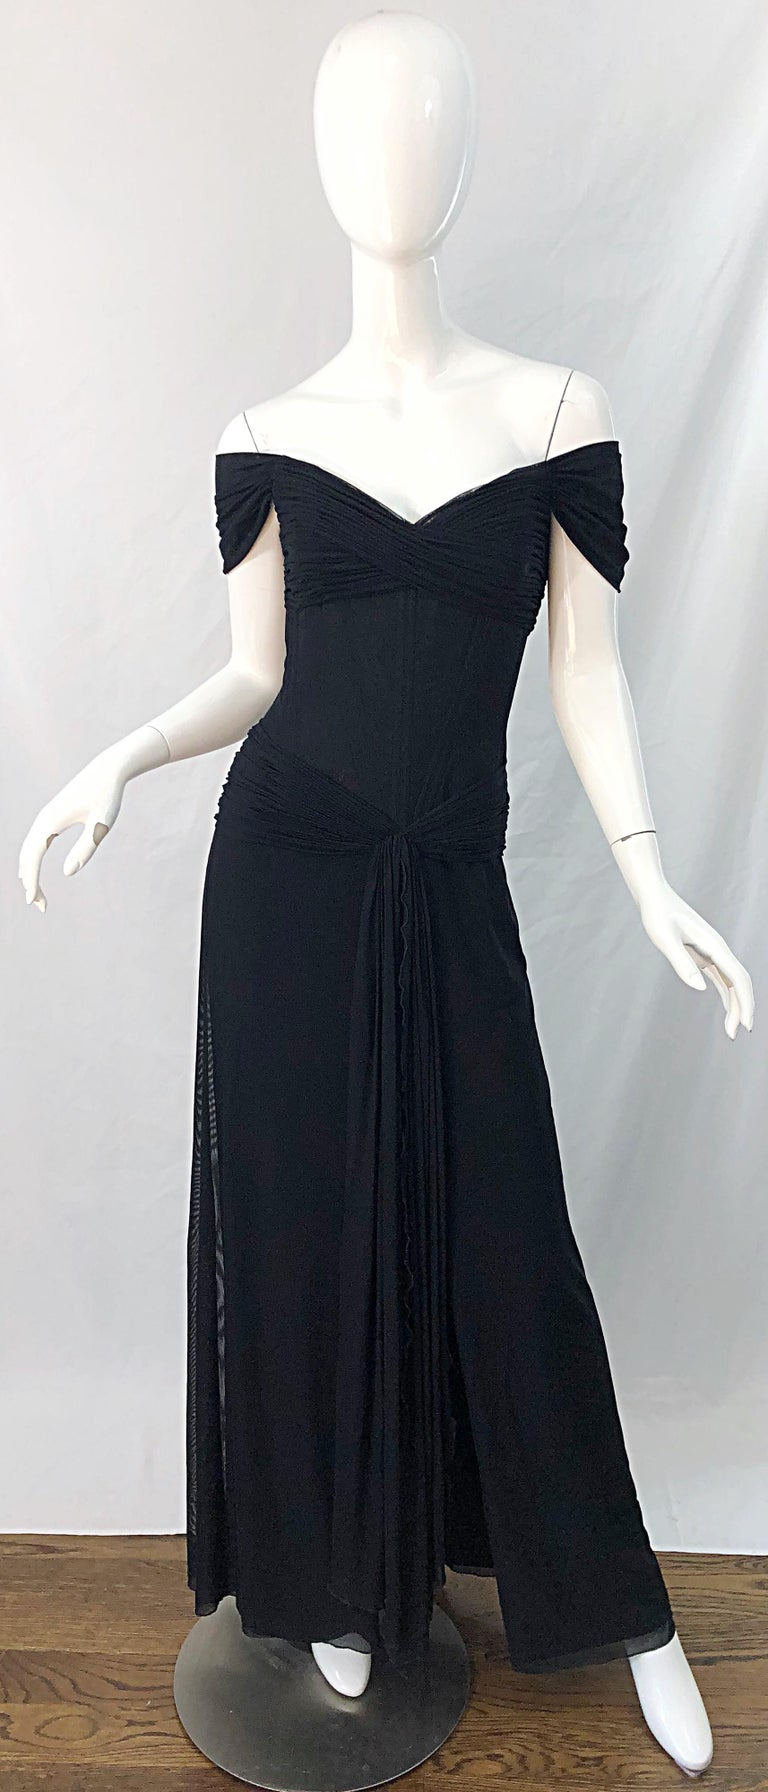 Julia Roberts Pretty Woman Vintage Vicky Tiel Couture Sz 12 Black 1980s Gown For Sale 12